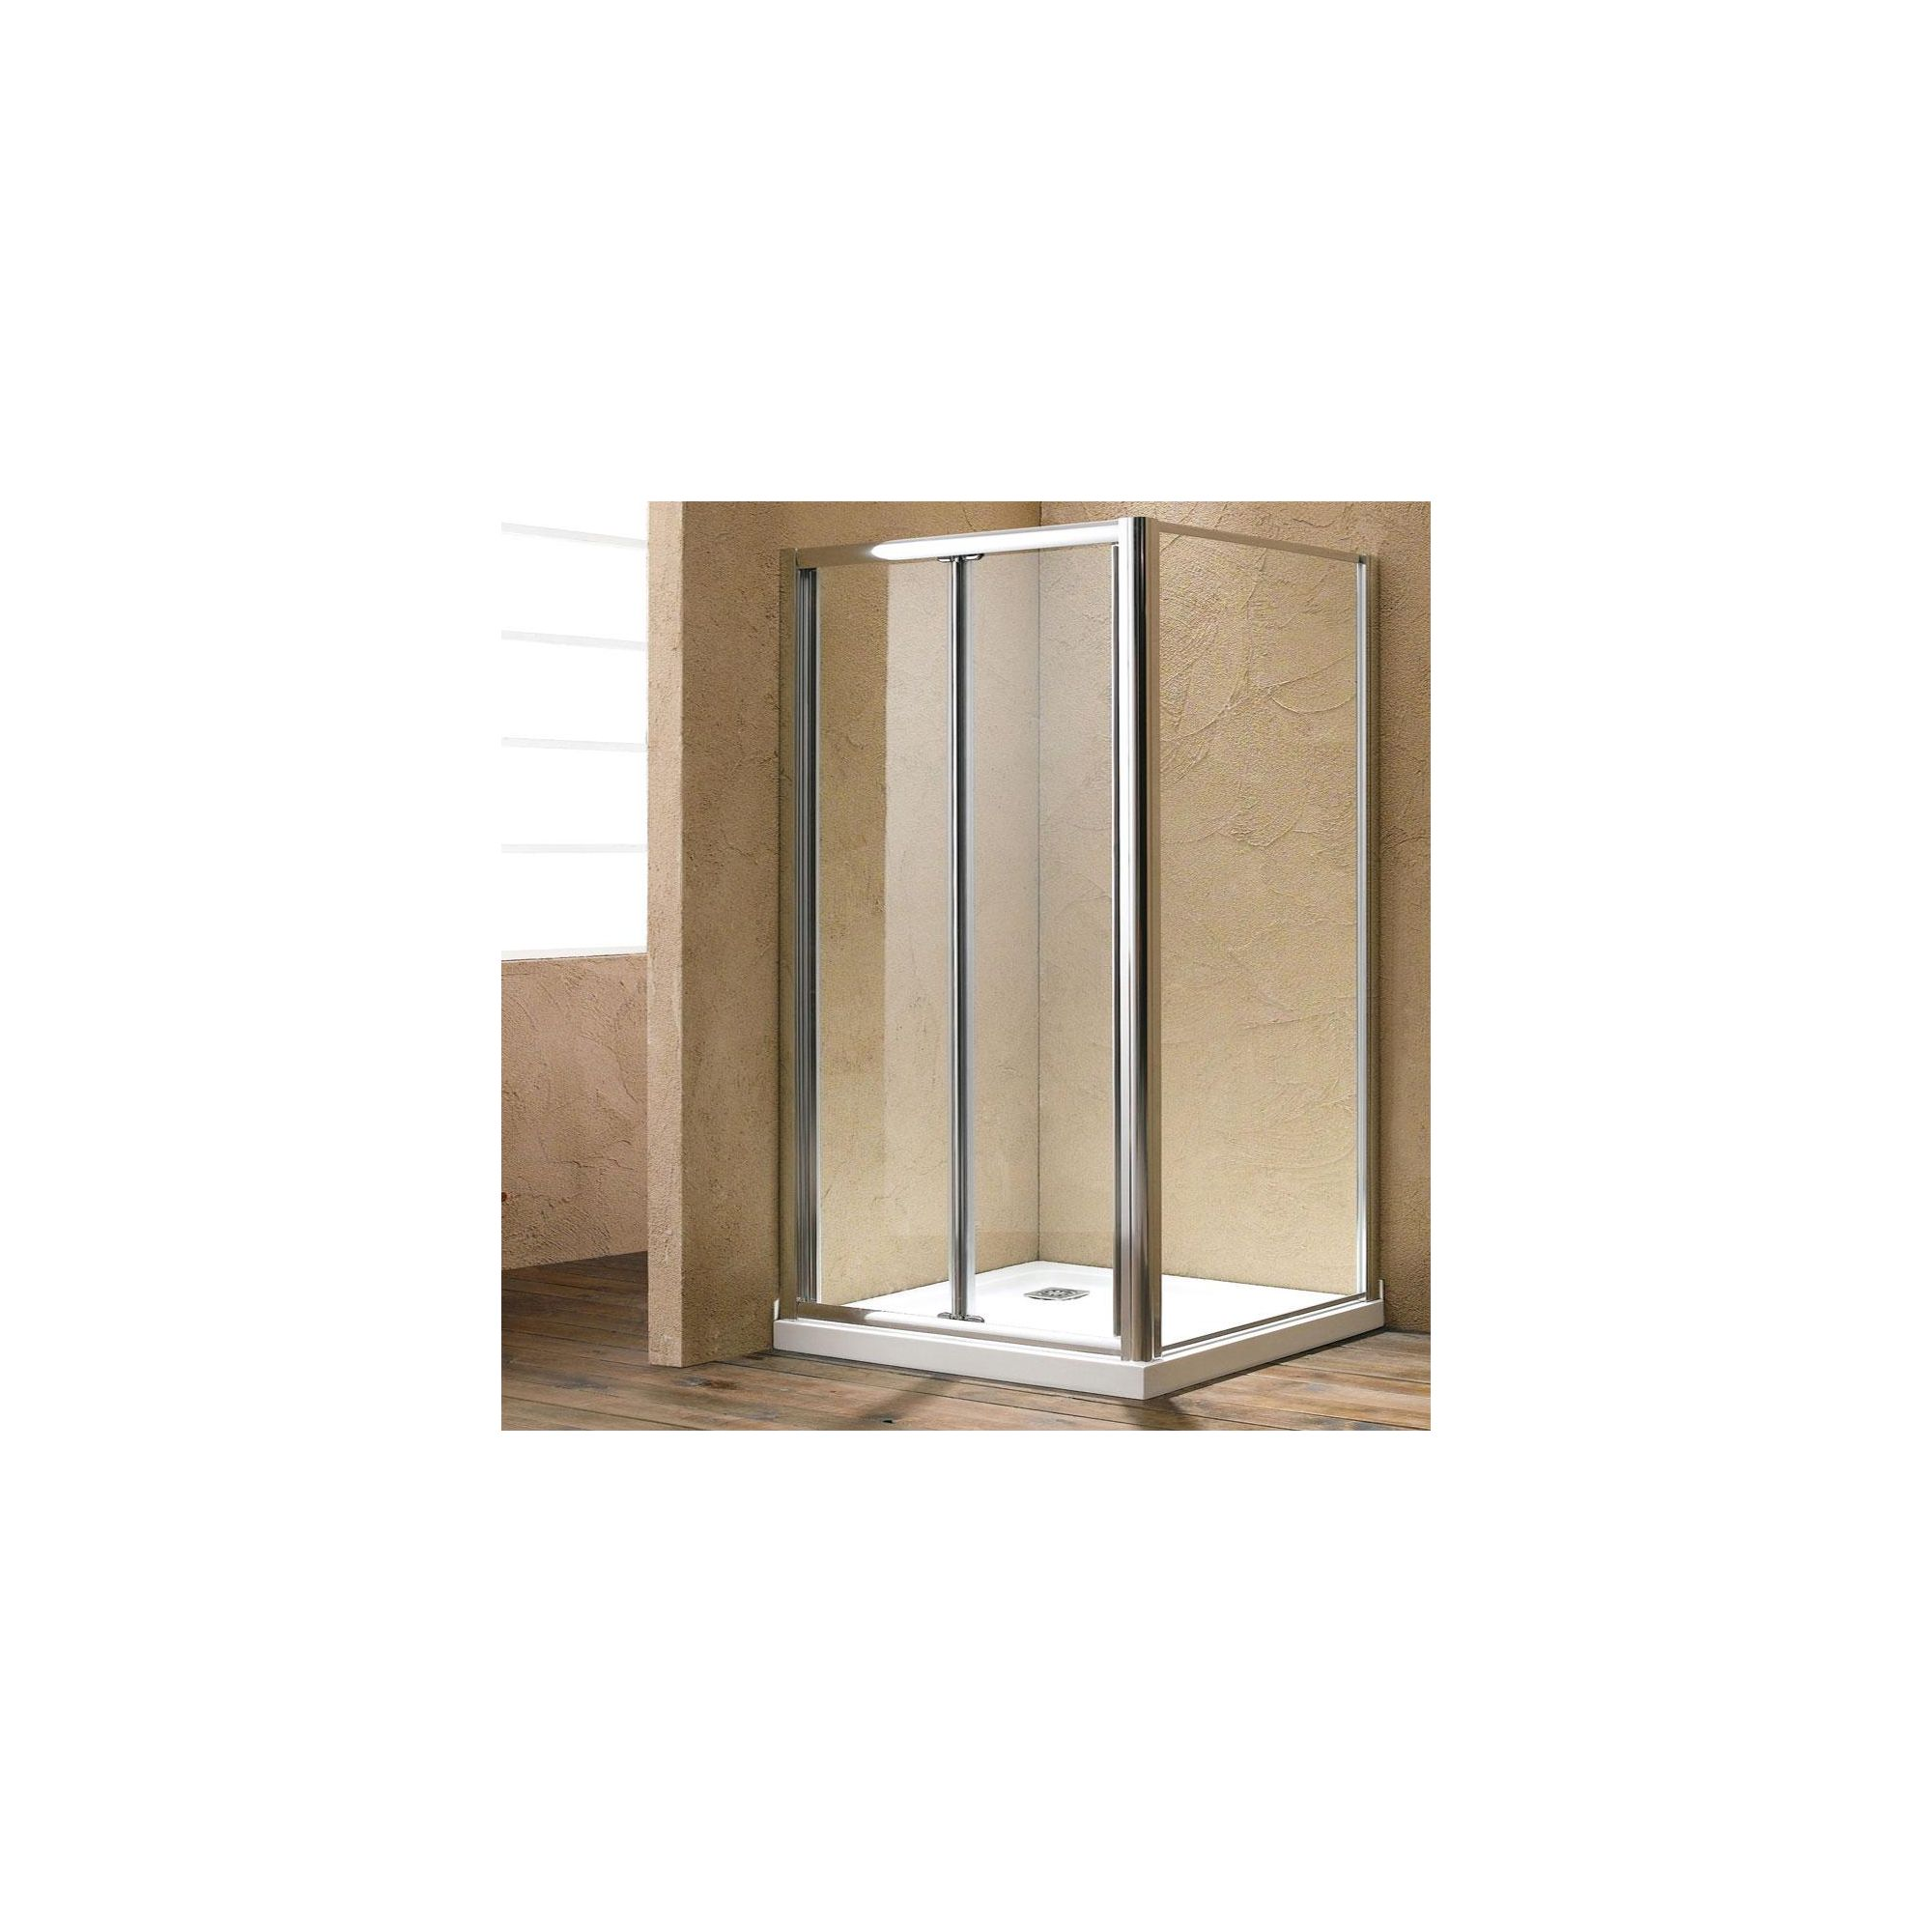 Duchy Style Twin Bi-Fold Door Shower Enclosure, 1000mm x 800mm, 6mm Glass, Low Profile Tray at Tesco Direct